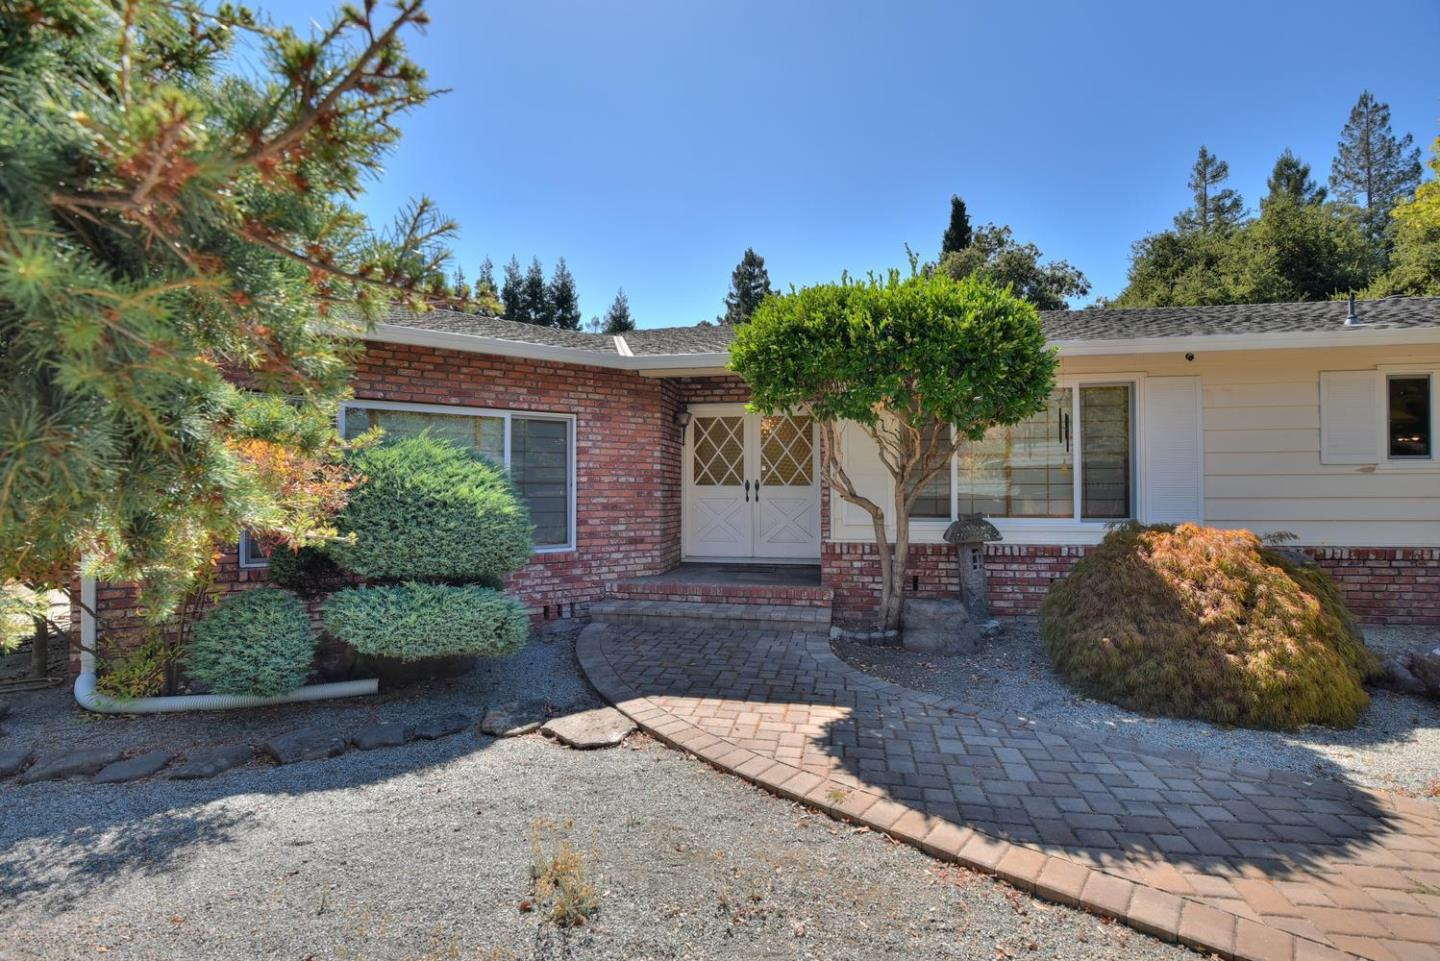 217 Stockbridge Avenue Atherton, CA 94027 - MLS #: ML81723428